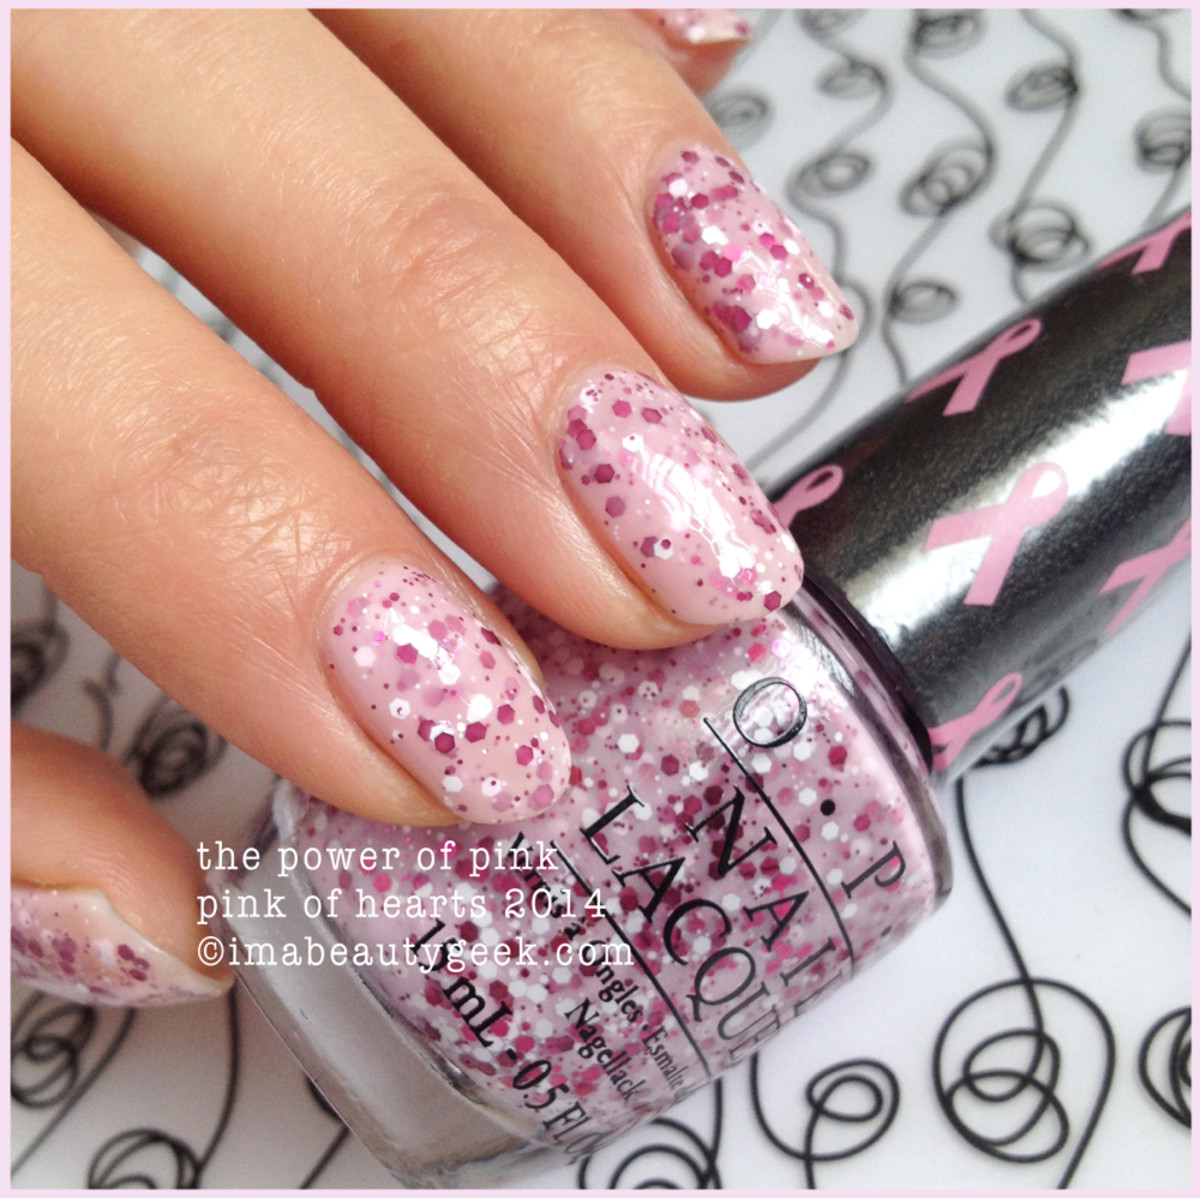 OPI The Power of Pink BCA Pink of Hearts 2014